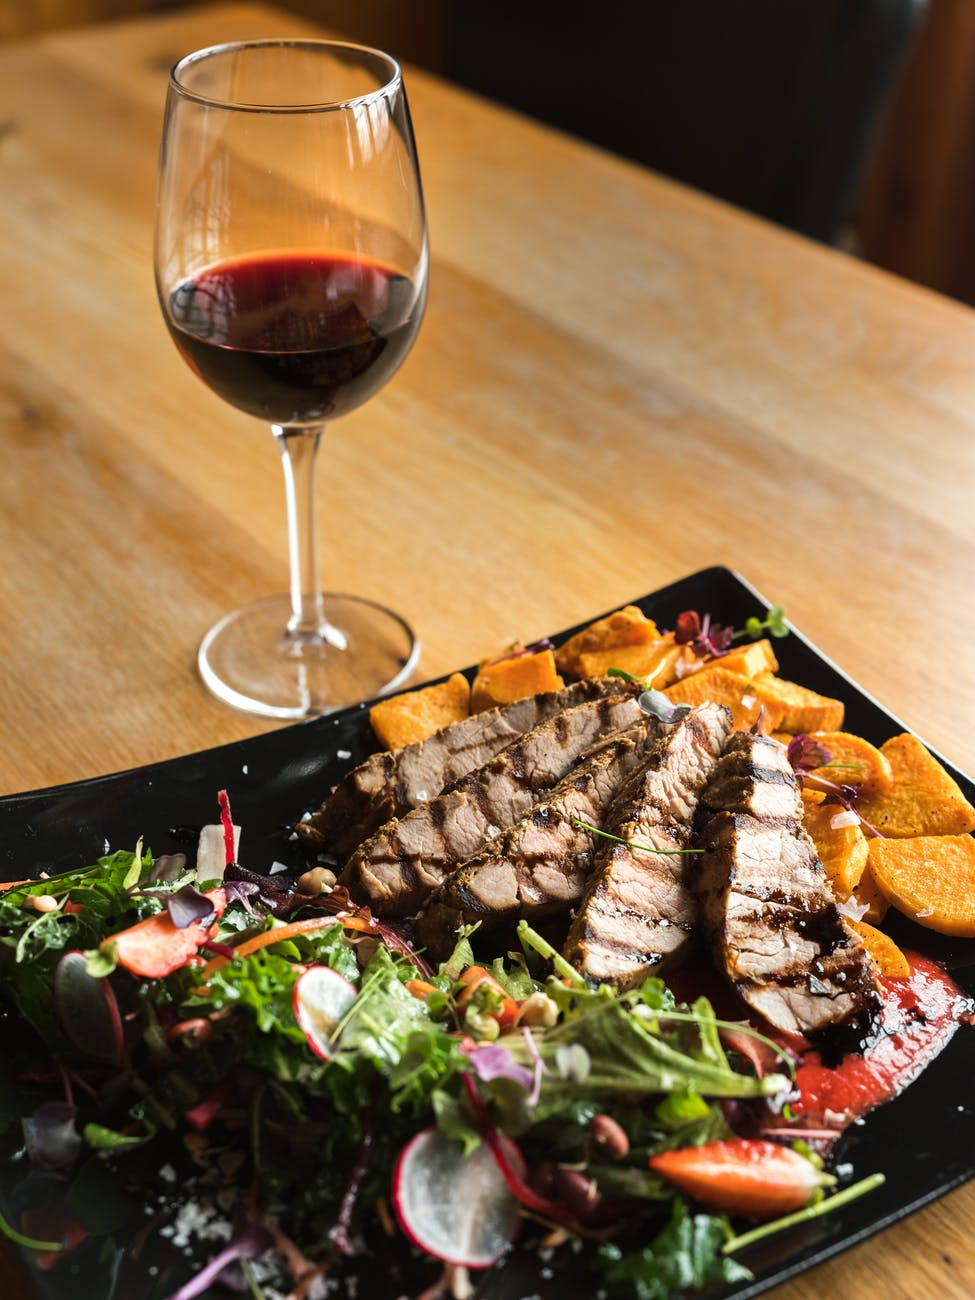 glass of wine and cut meat steak served with potatoes and vegetable salad